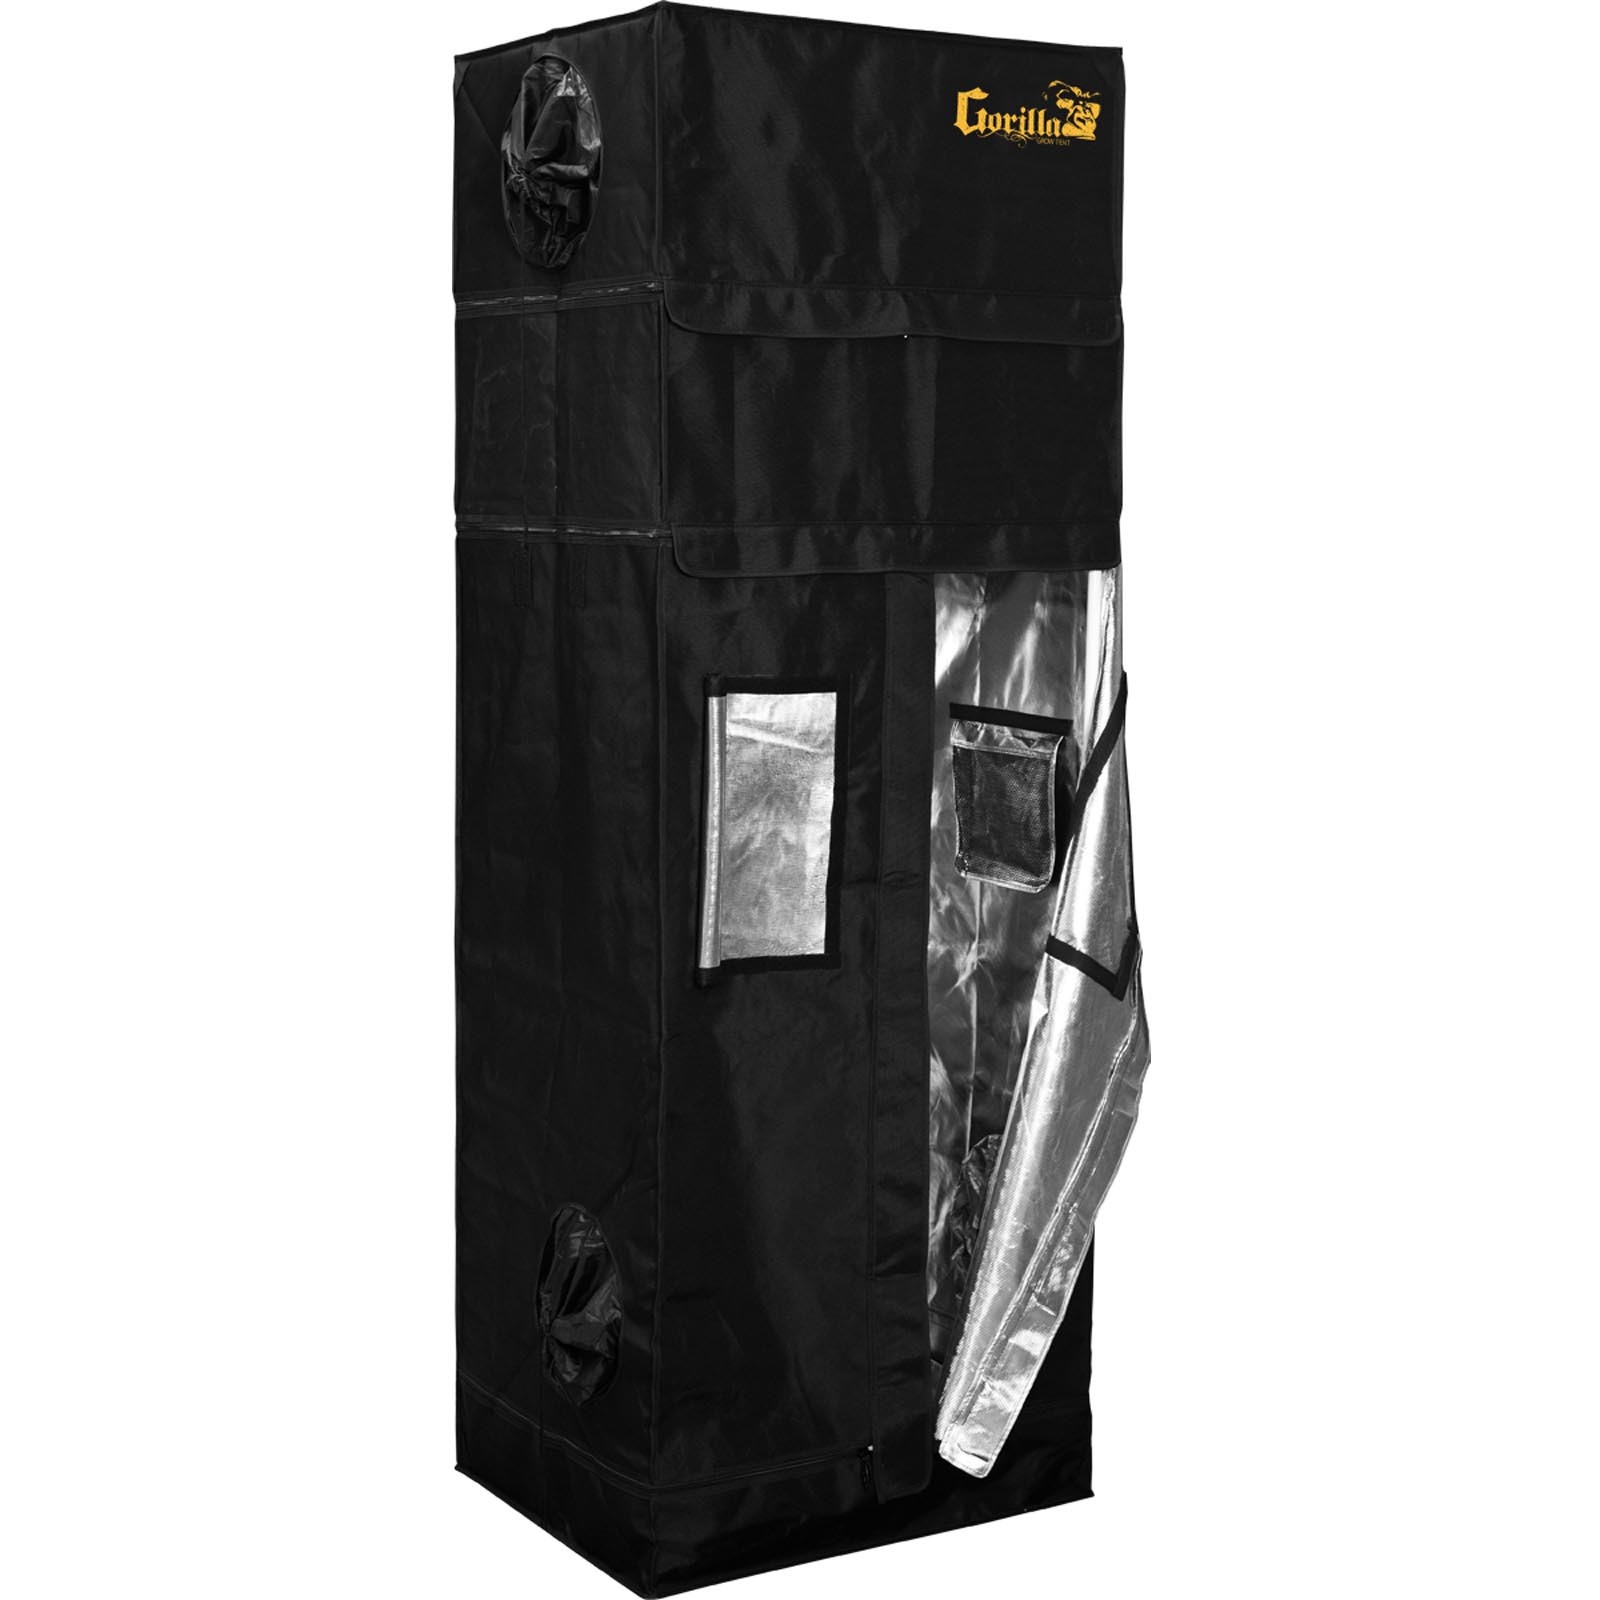 NEW Gorilla Grow Tent 2' x 2.5' Indoor Hydroponic Greenhouse Garden Room | GGT22